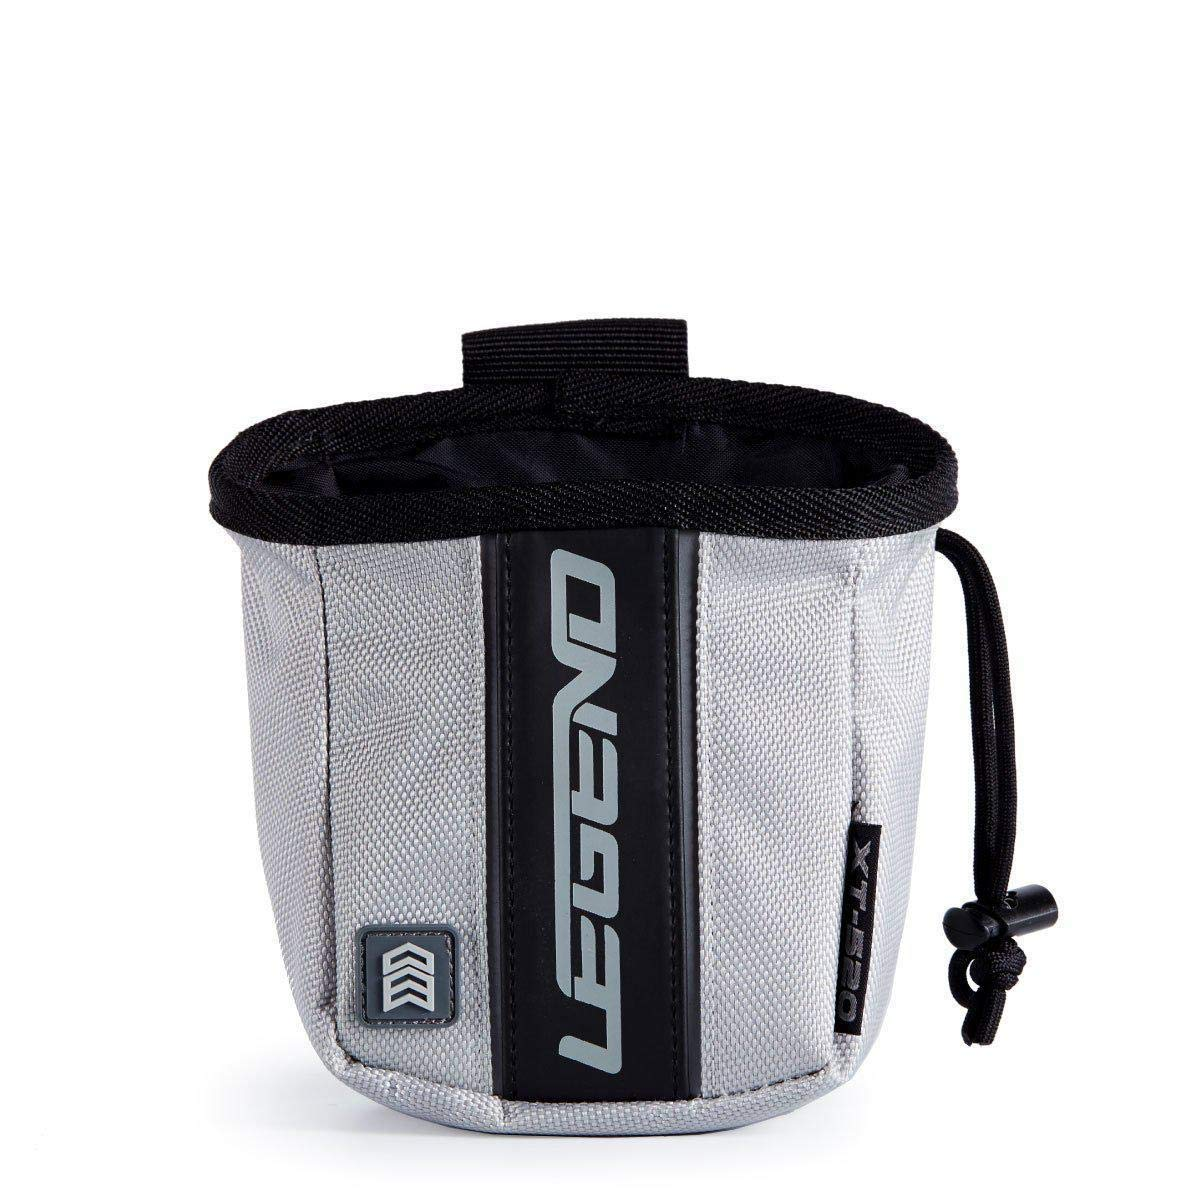 Legend Archery Release Aids Pouch Bag with Belt Loop Draw String and Zipped Pocket XT520 (Grey) by Legend